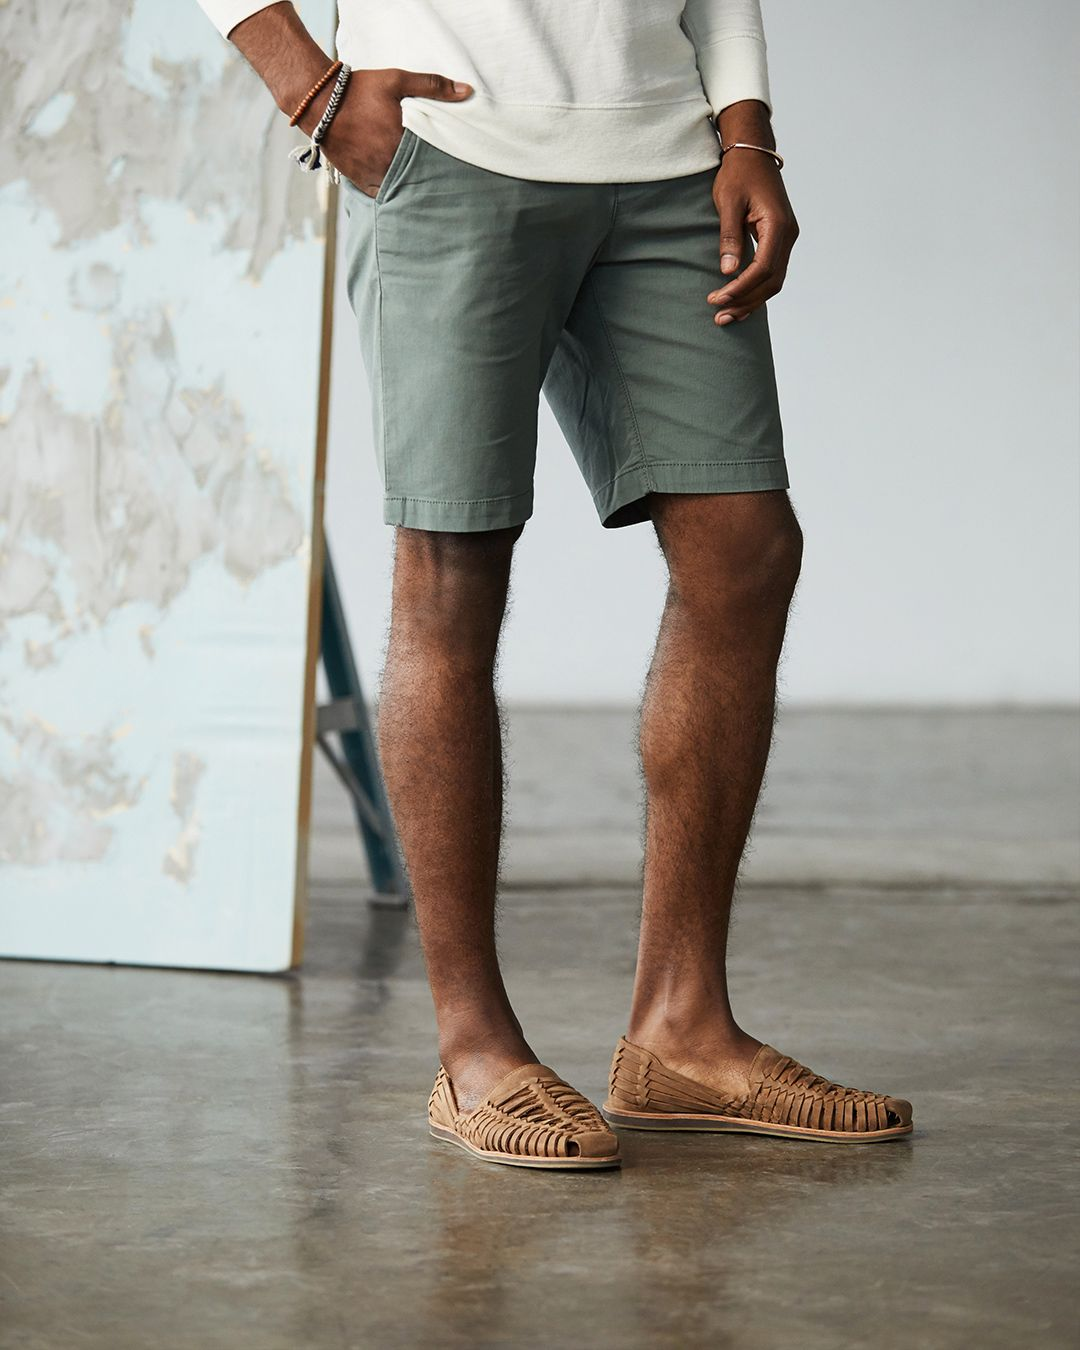 summer outfits, Mens outfit inspiration